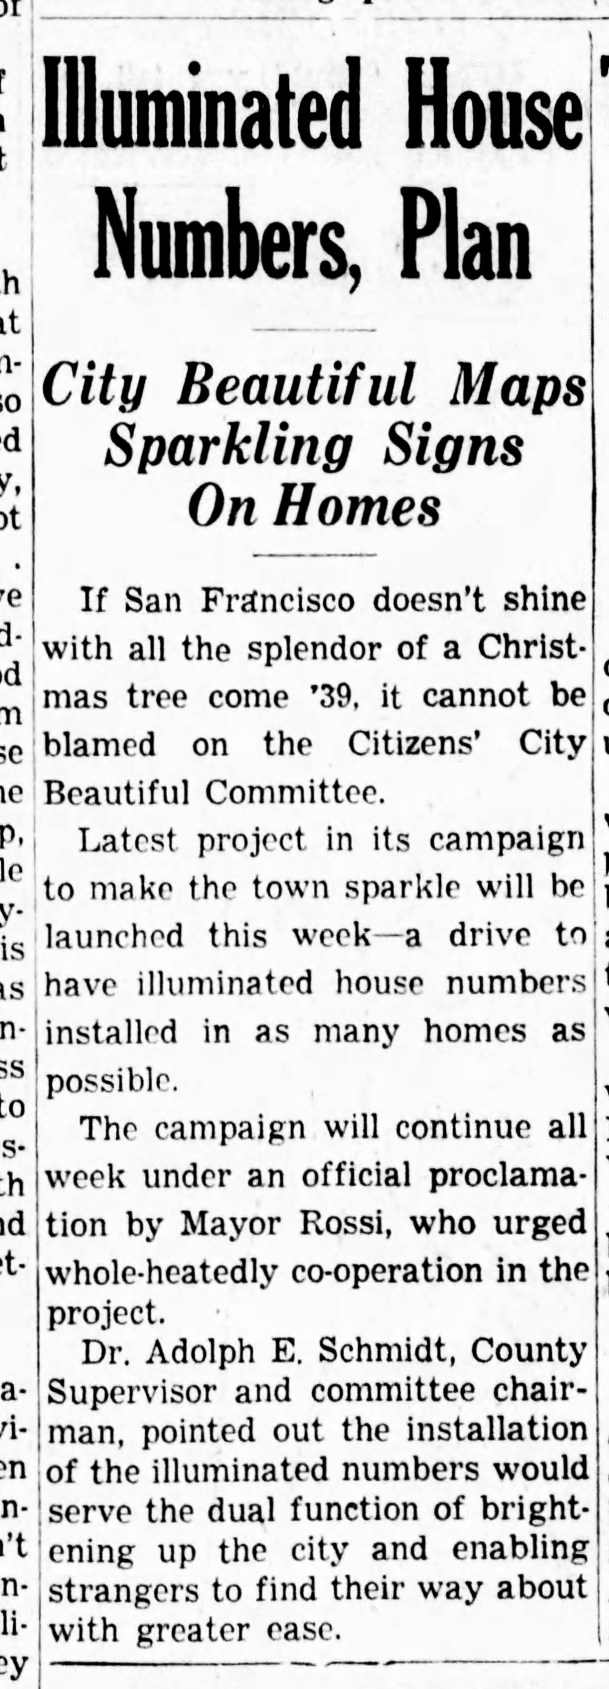 SF Examiner, 6 Jun 1938. Newspapers.com